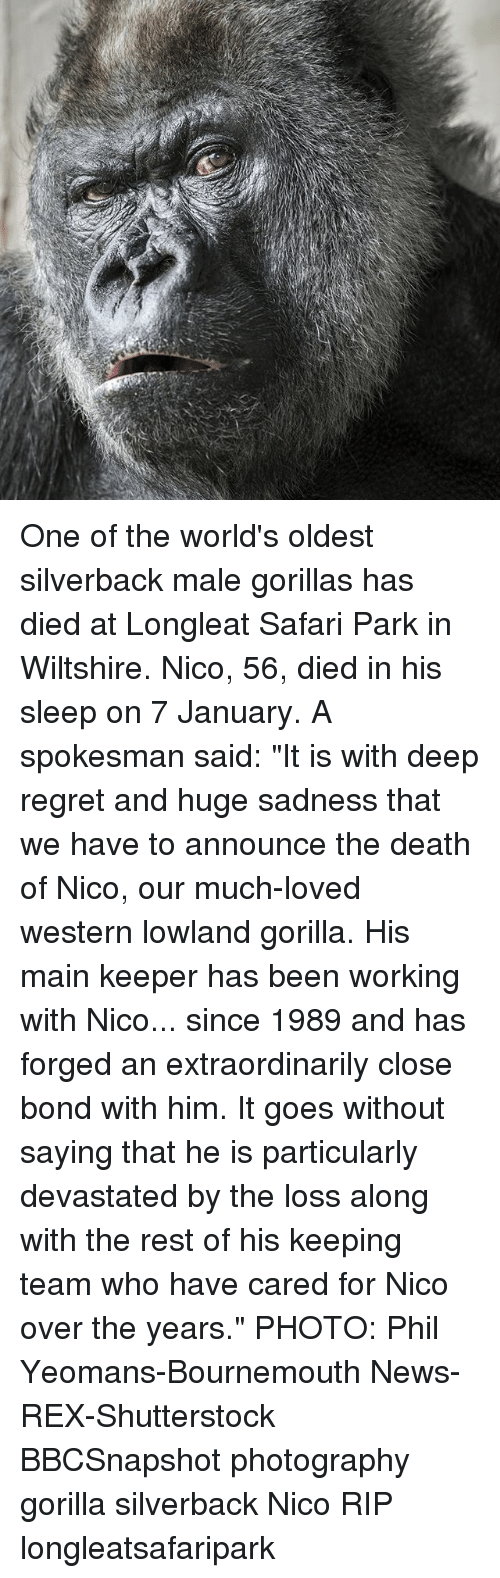 "Memes, News, and Regret: One of the world's oldest silverback male gorillas has died at Longleat Safari Park in Wiltshire. Nico, 56, died in his sleep on 7 January. A spokesman said: ""It is with deep regret and huge sadness that we have to announce the death of Nico, our much-loved western lowland gorilla. His main keeper has been working with Nico... since 1989 and has forged an extraordinarily close bond with him. It goes without saying that he is particularly devastated by the loss along with the rest of his keeping team who have cared for Nico over the years."" PHOTO: Phil Yeomans-Bournemouth News-REX-Shutterstock BBCSnapshot photography gorilla silverback Nico RIP longleatsafaripark"